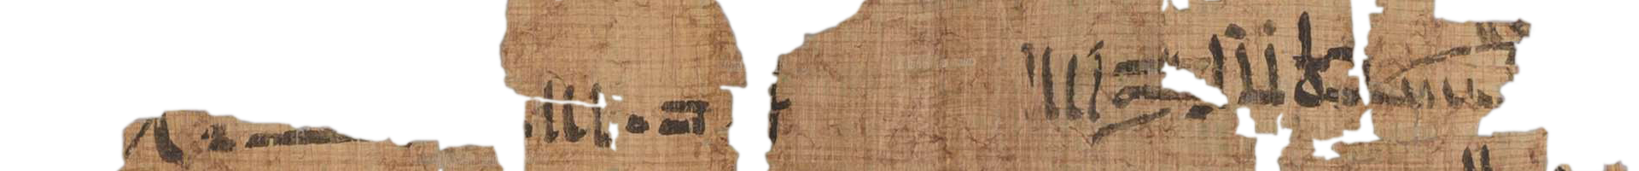 the Turin king list 4.1 (photo of the hieratic text)